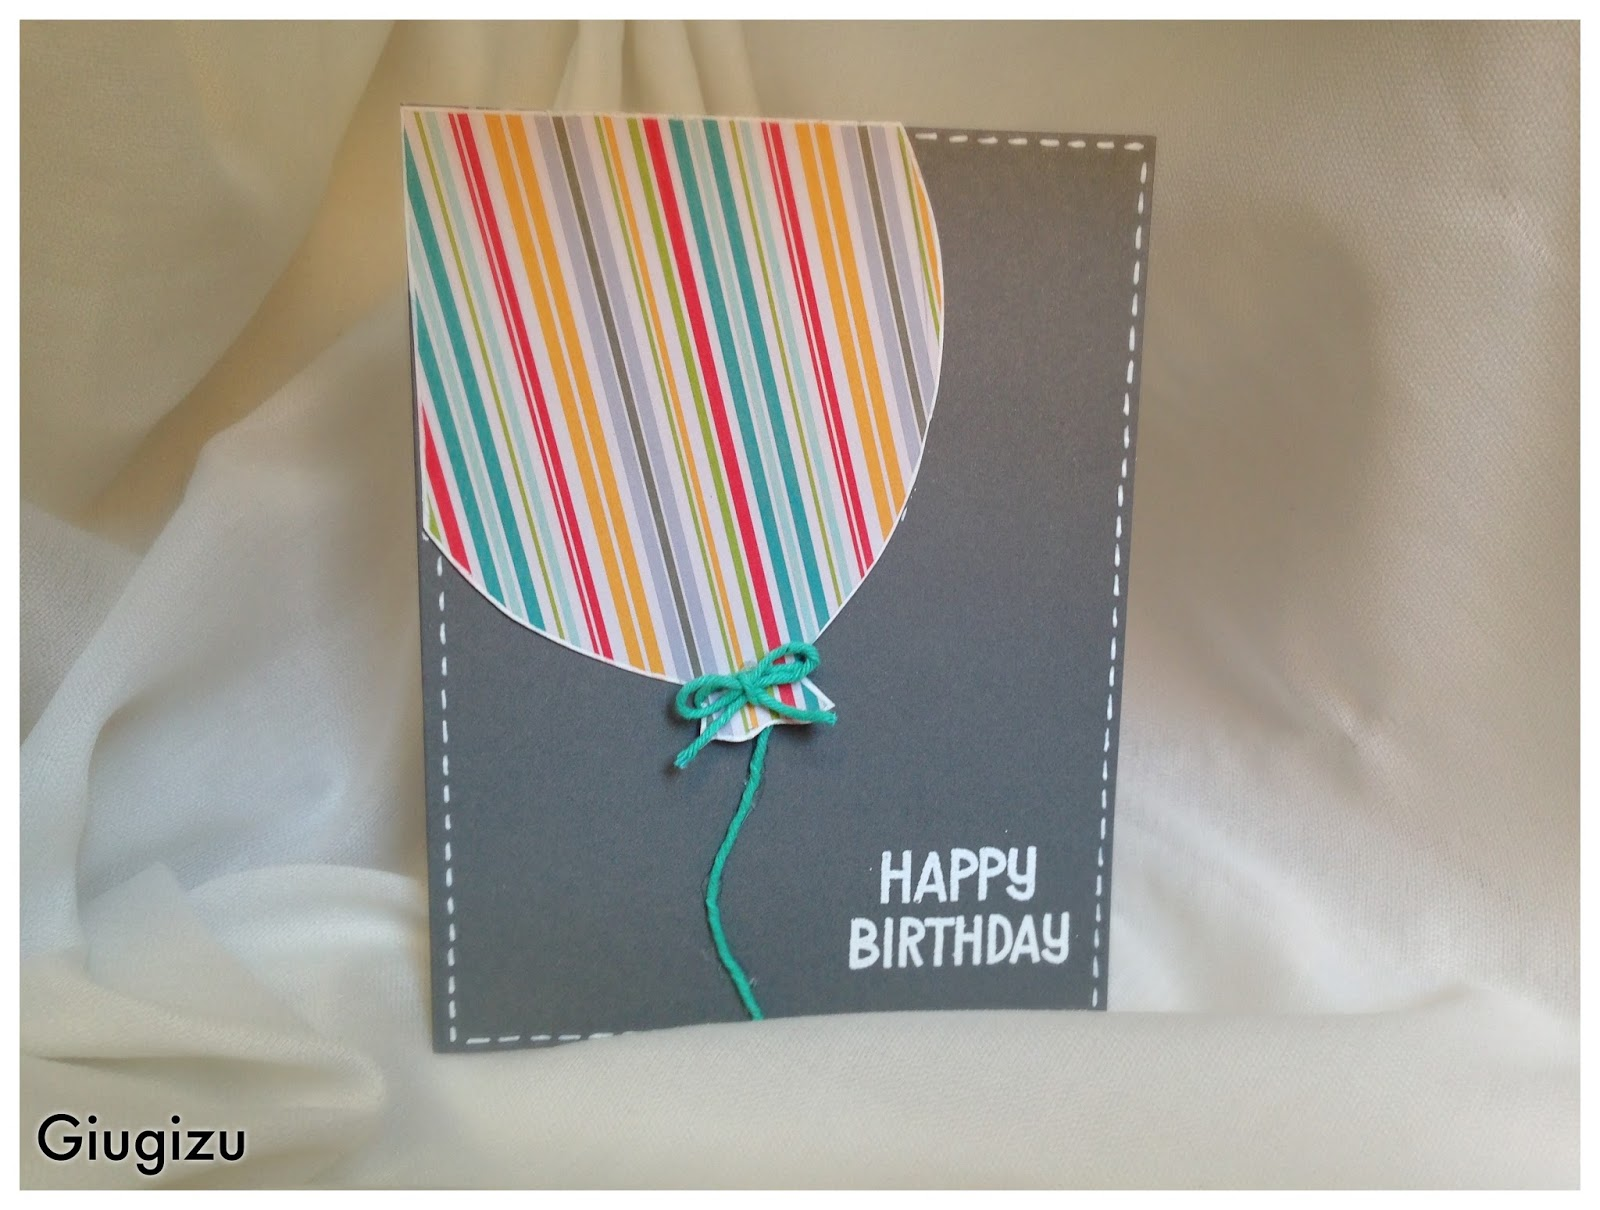 Top Giugizu's corner: Handmade Flying Balloon birthday card  OB48